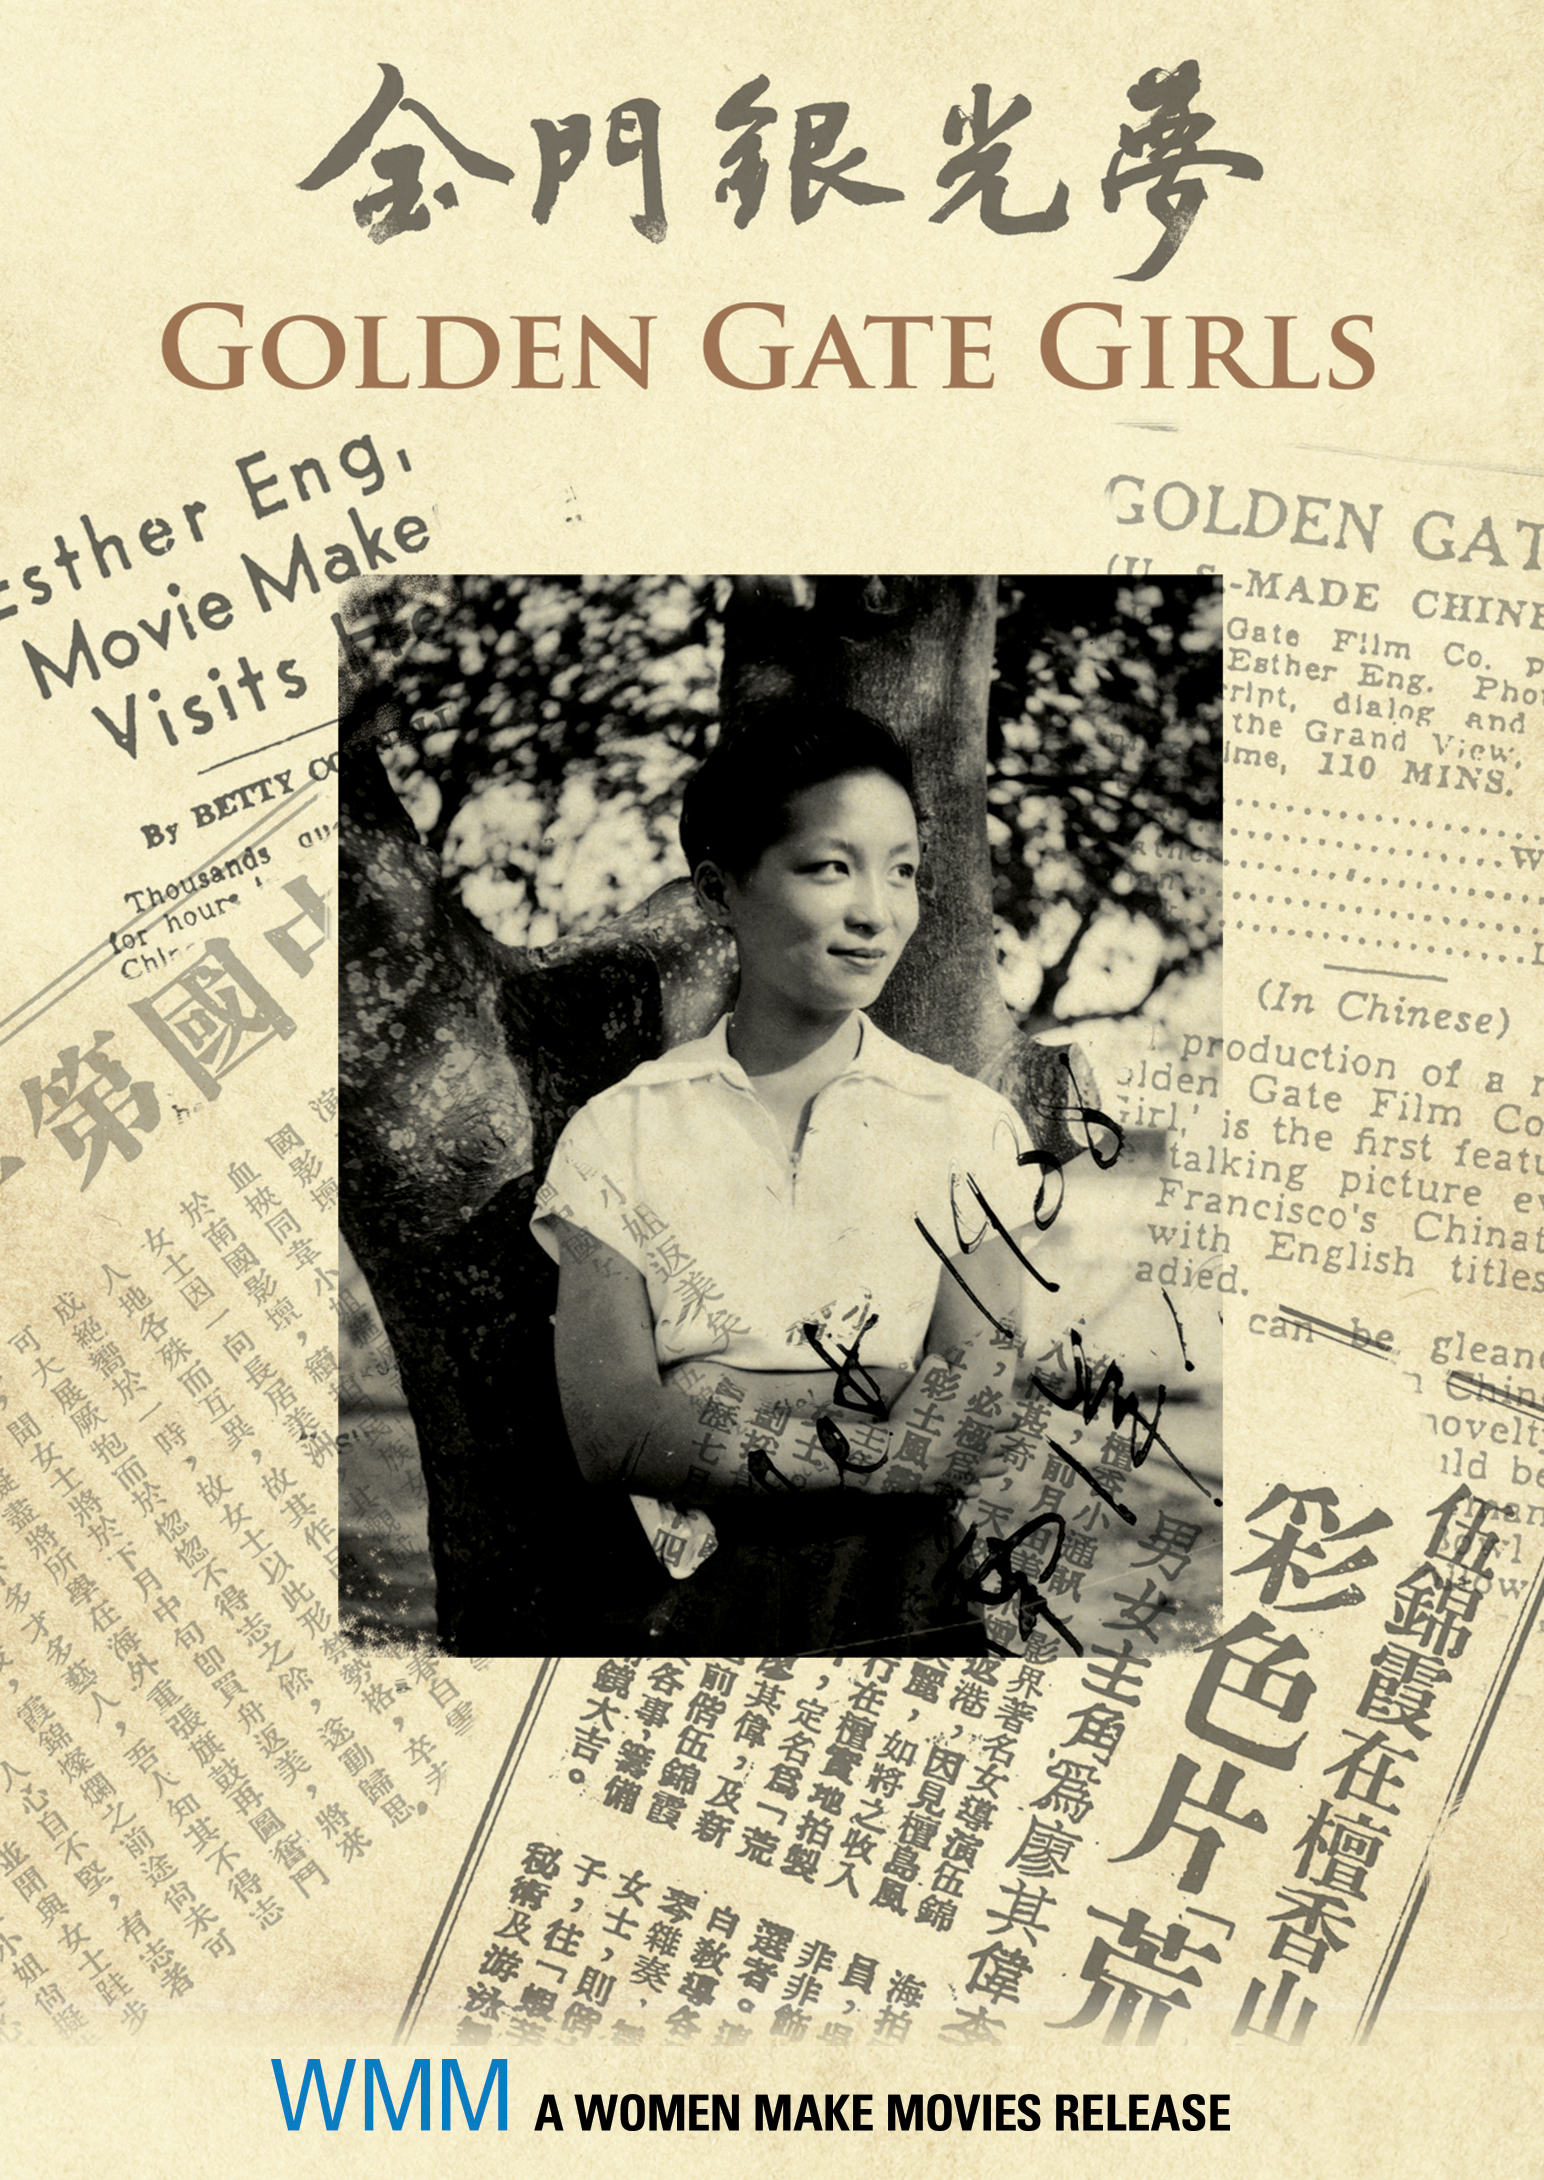 Image of Esther Eng from Golden Gate Girls